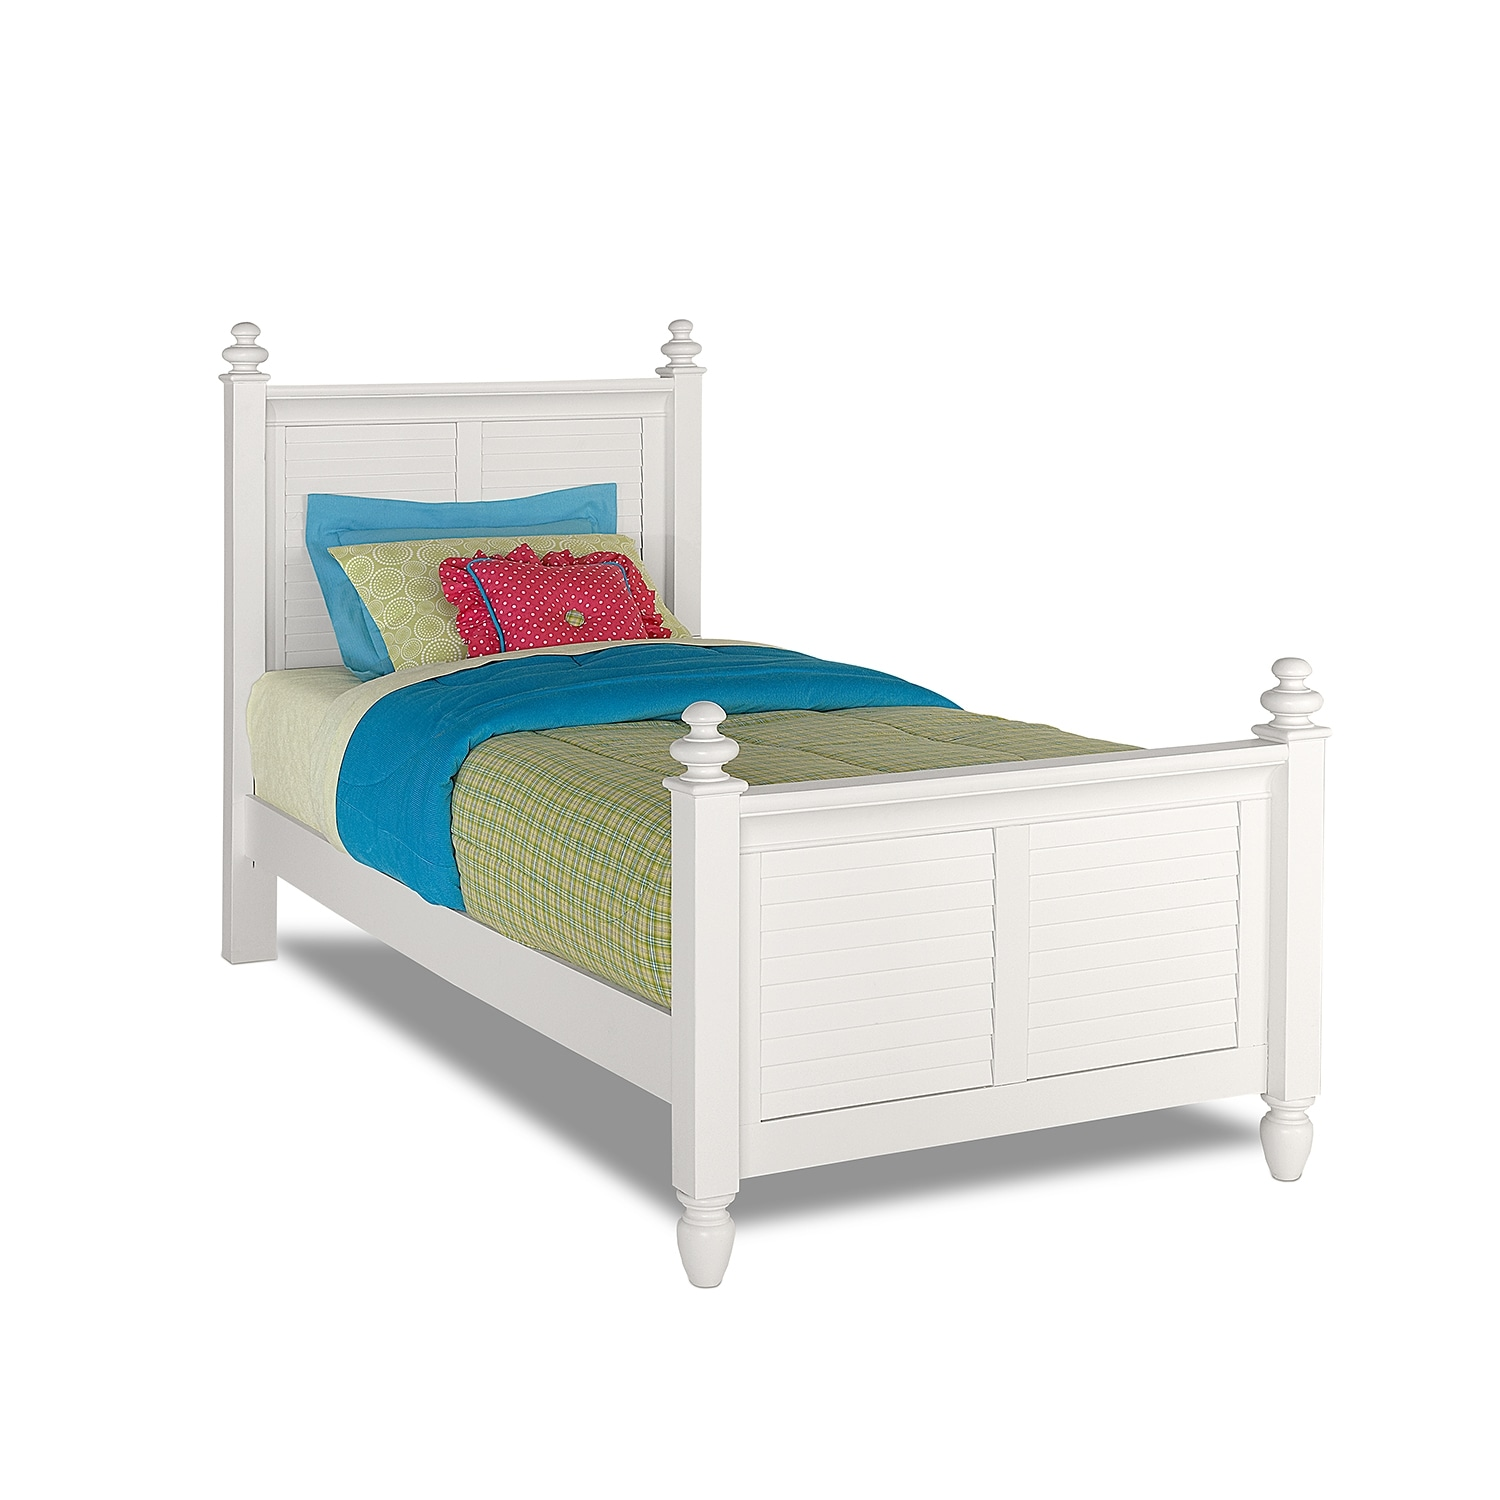 Seaside Twin Bed - White